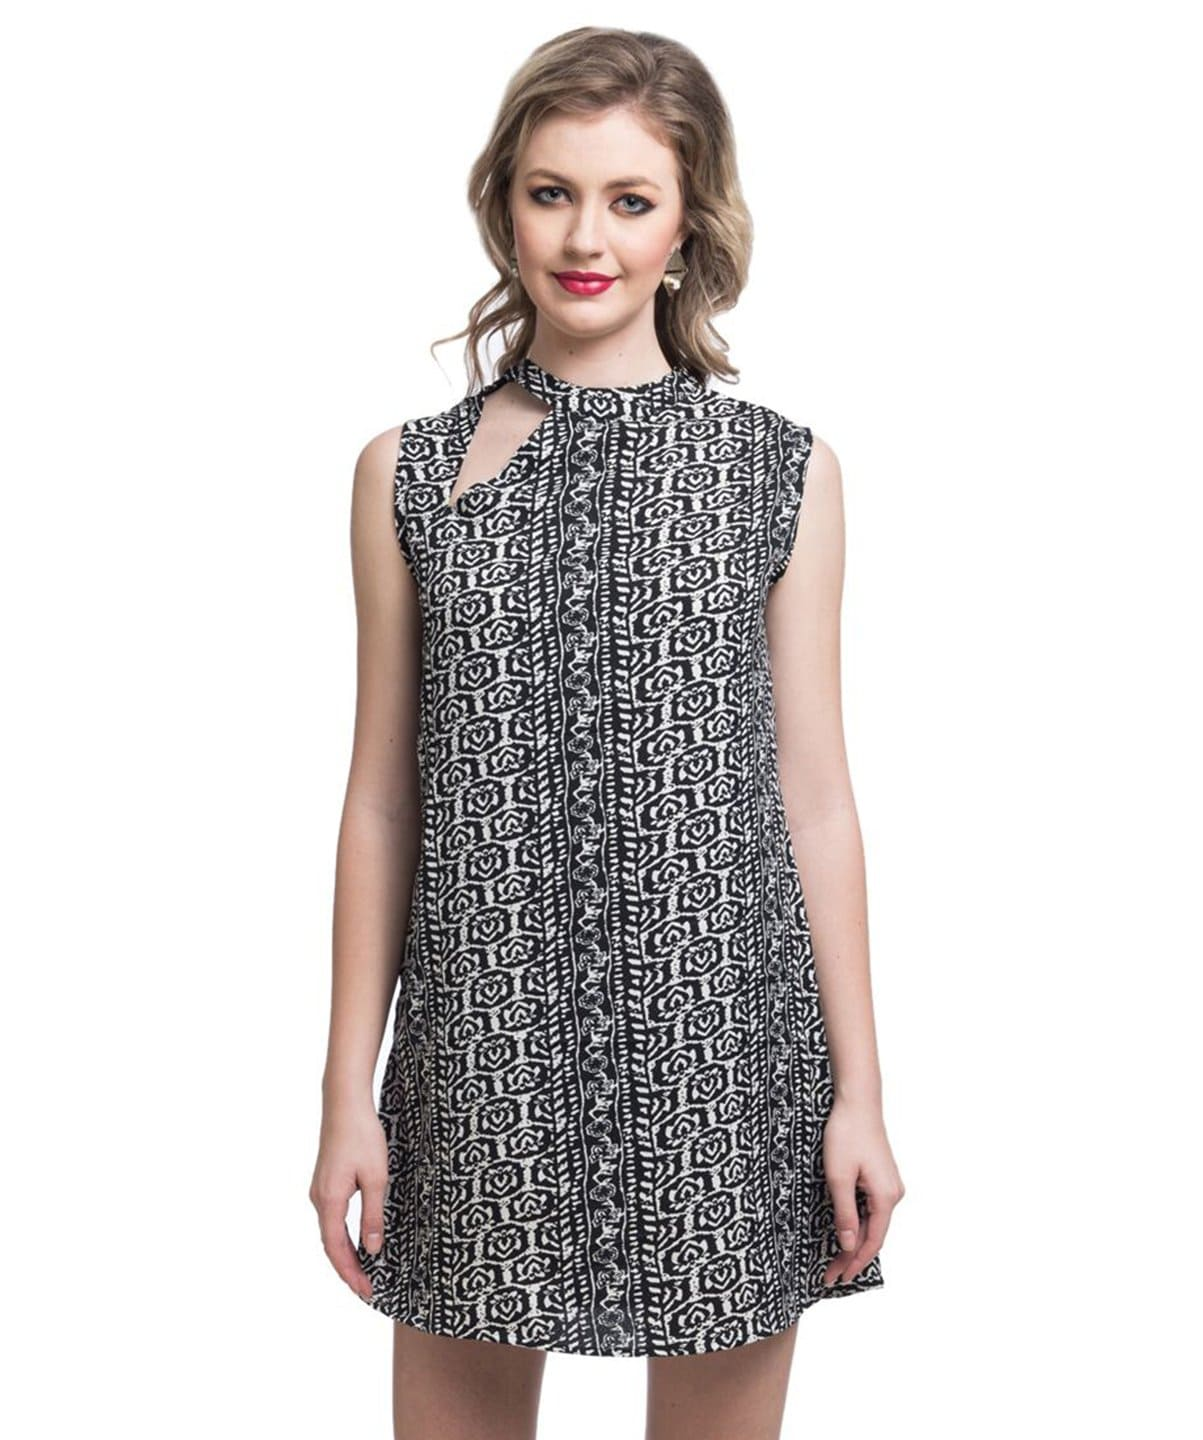 Printed Black Cutout Dress - Uptownie